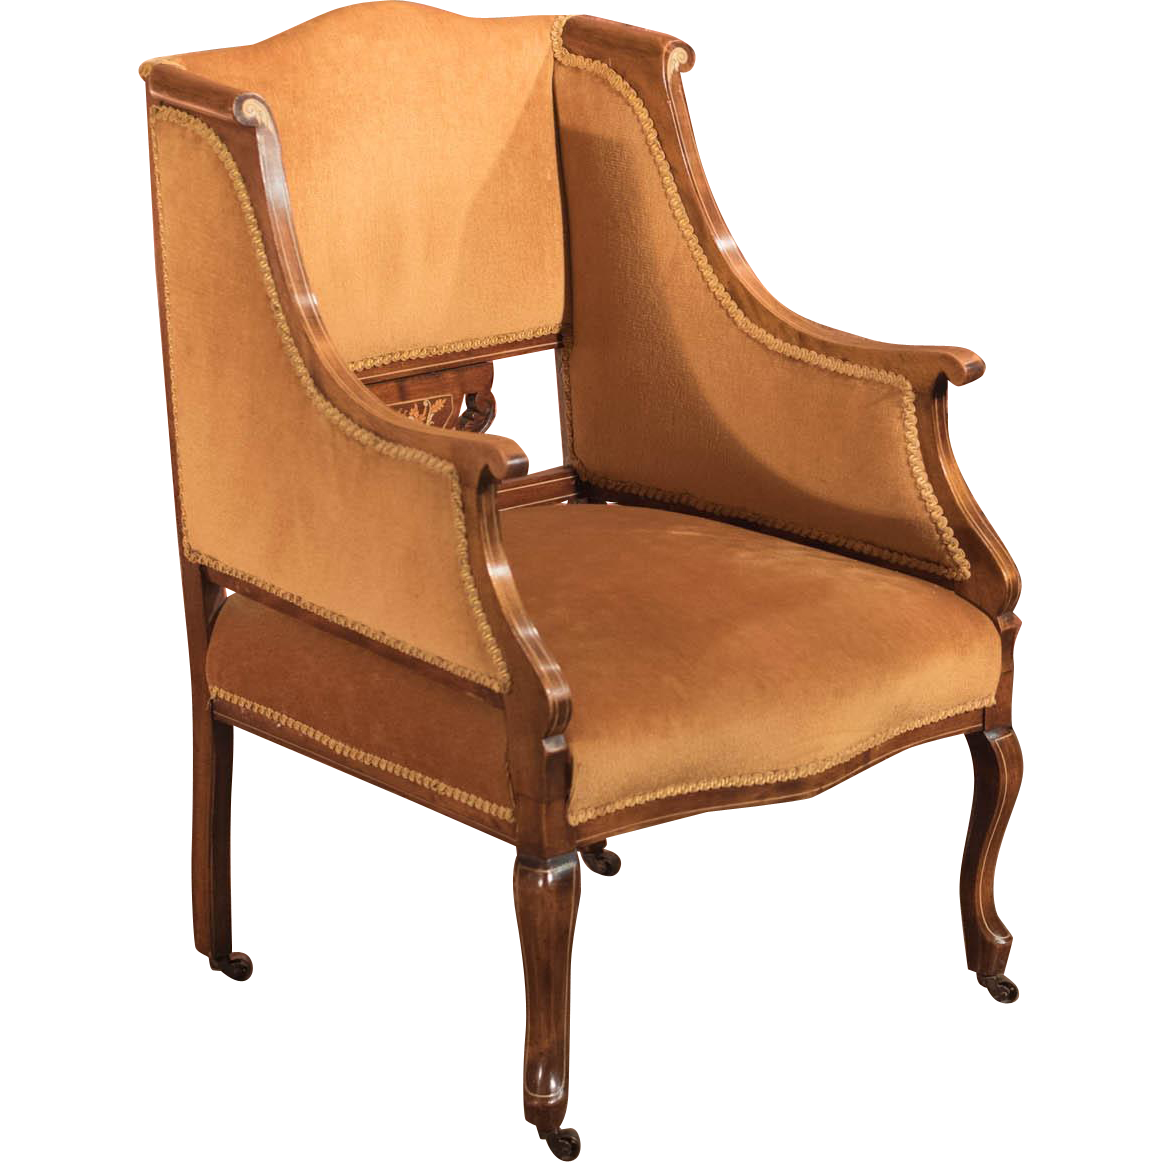 Armchair drawing victorian chair. Edwardian room c at